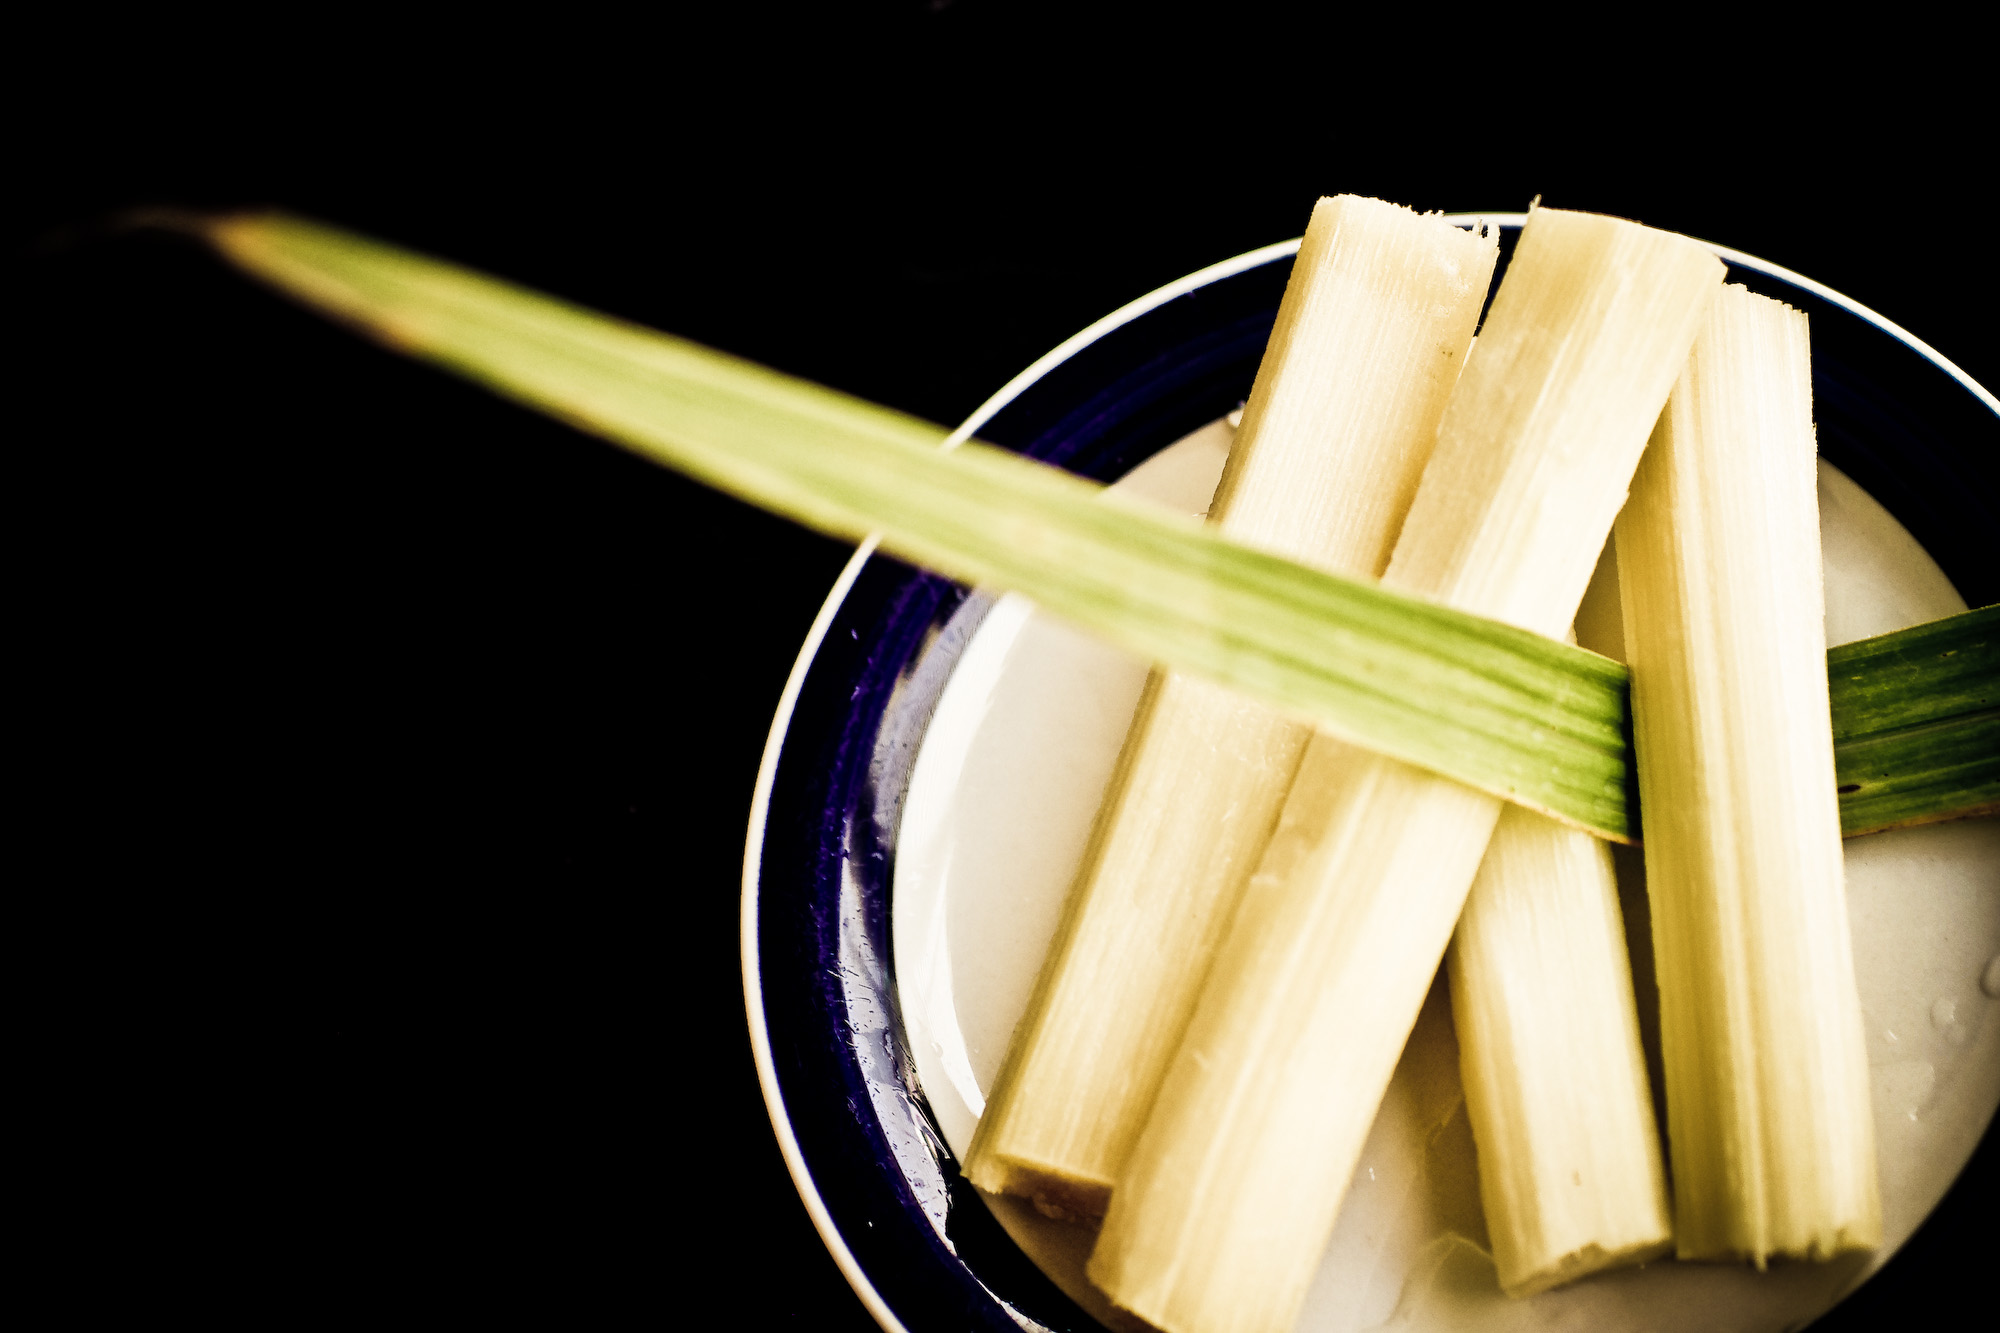 Harvesting Sugarcane – Culinary Road Trippin in the U.S.A